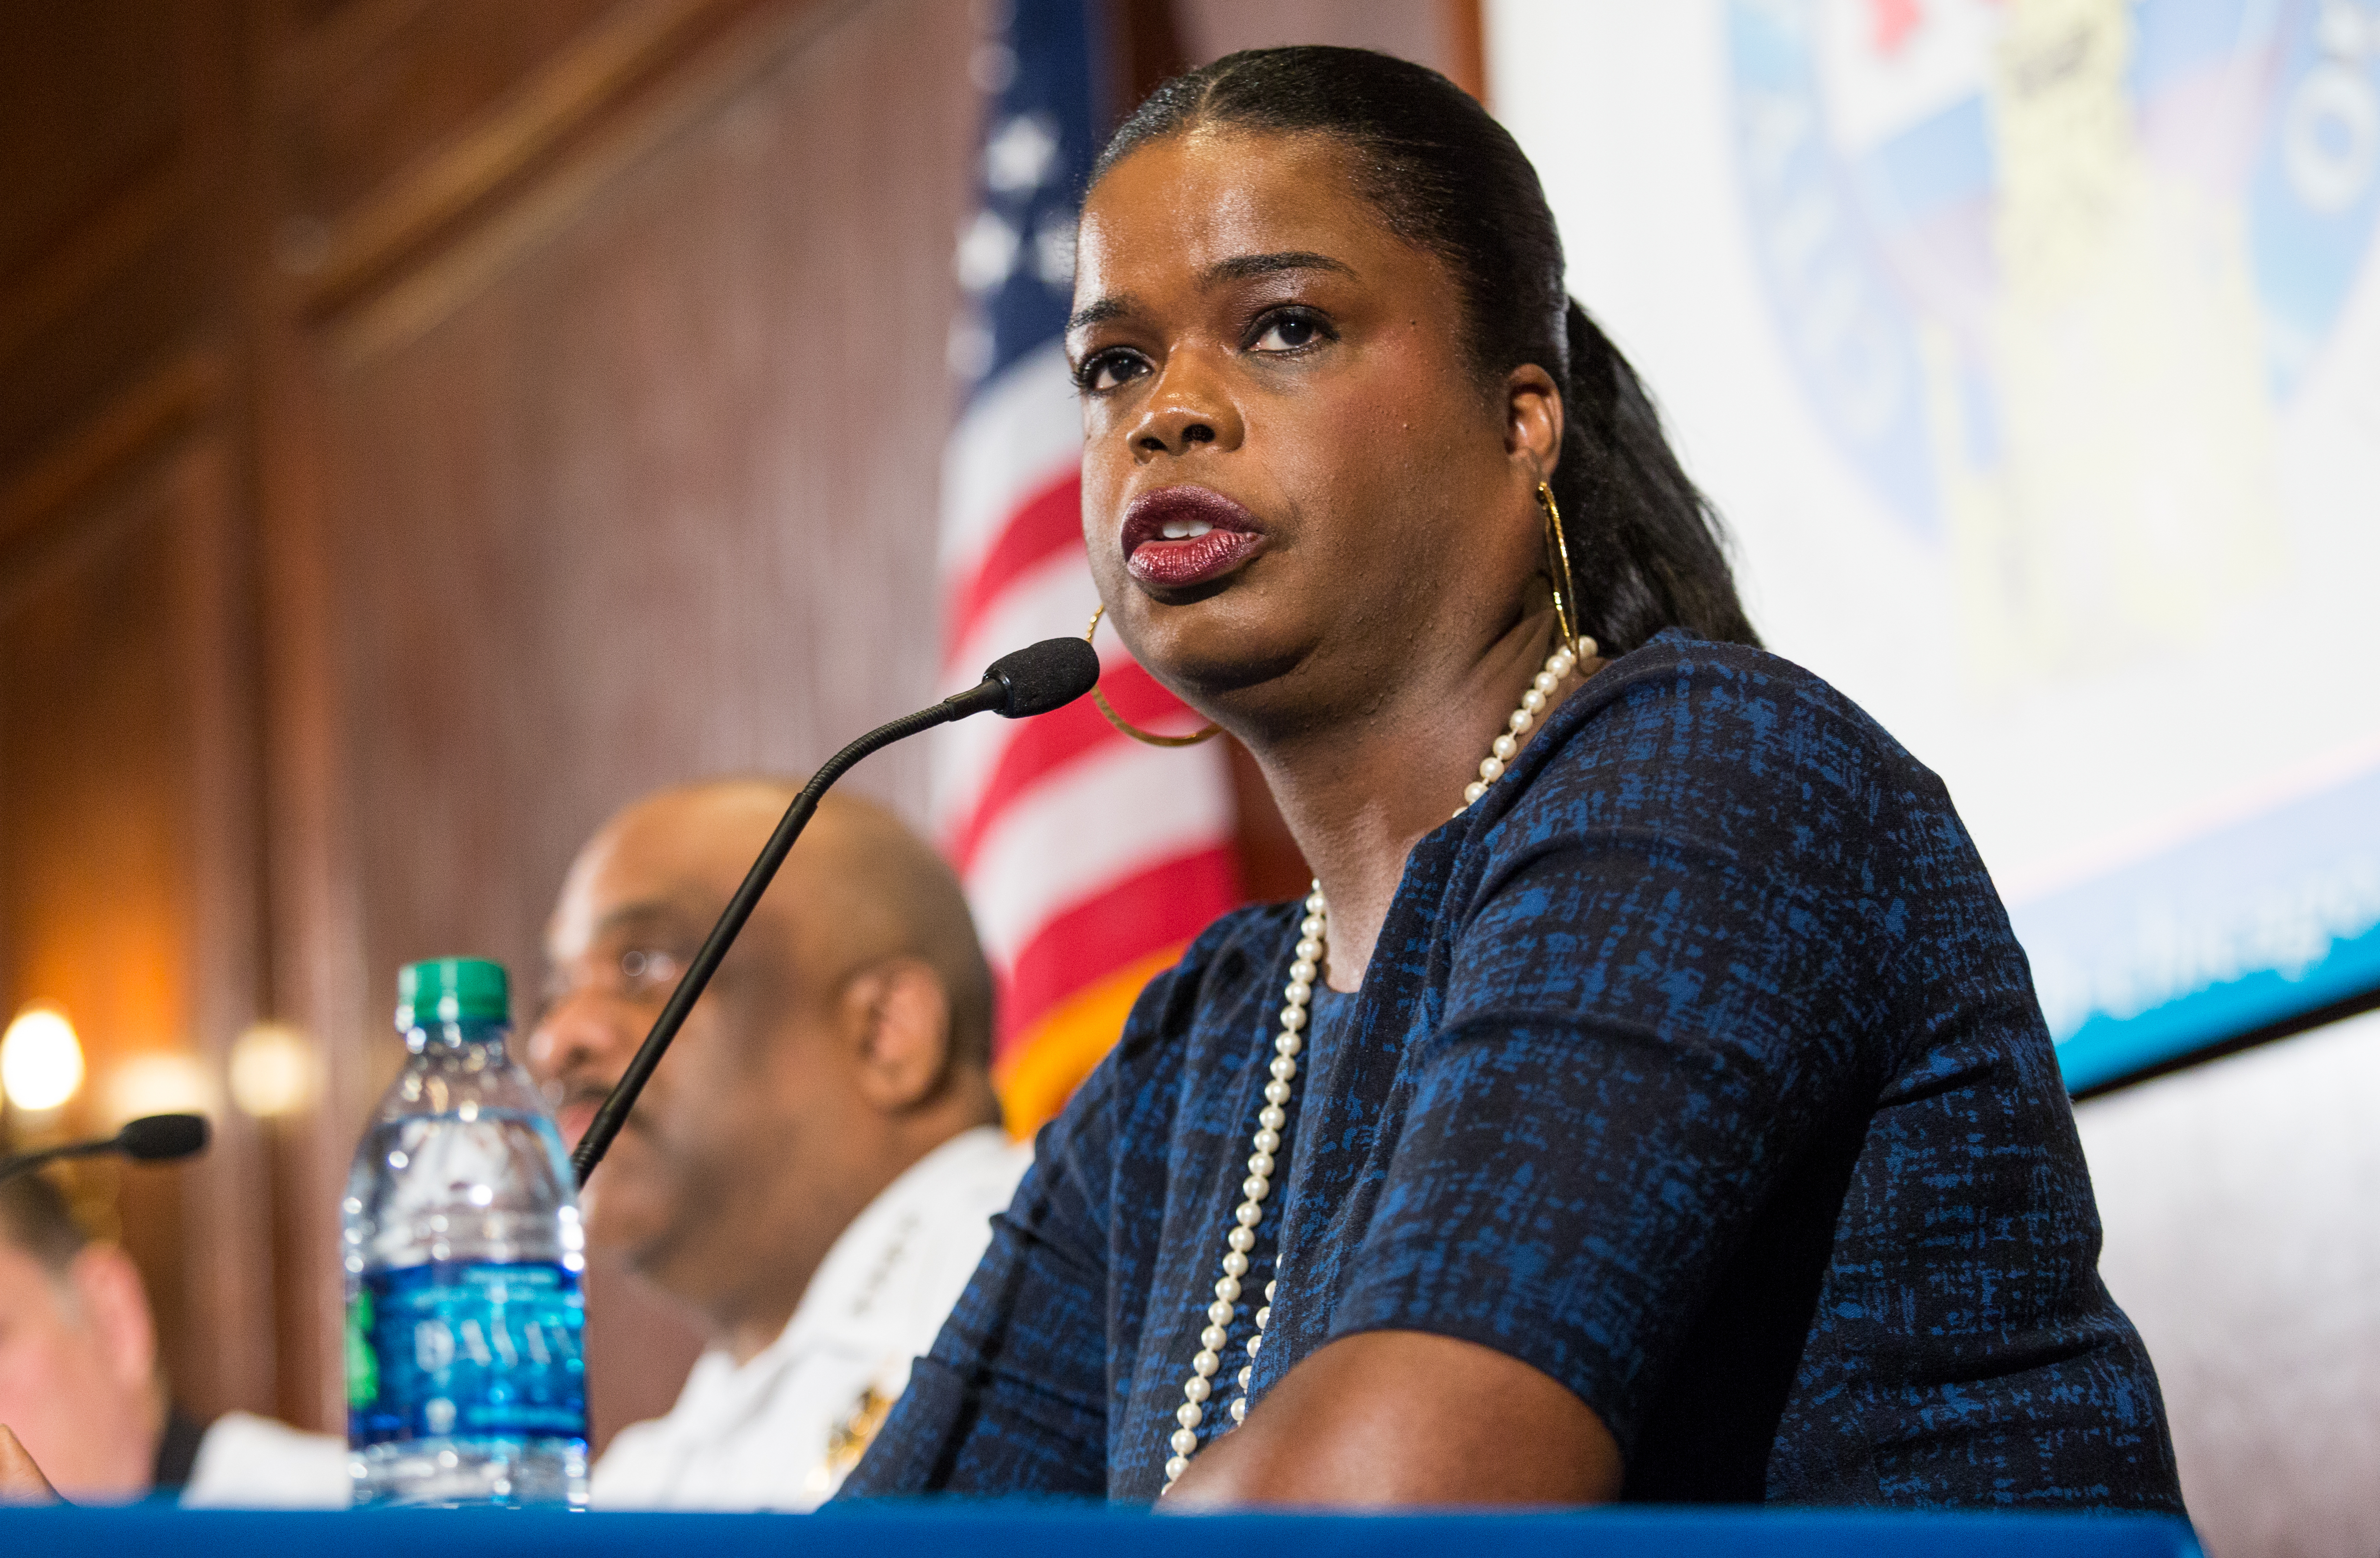 Shortly after the 2016 election, Cook County State's Attorney-elect Kim Foxx spoke about violence in Chicago at the City Club of Chicago.